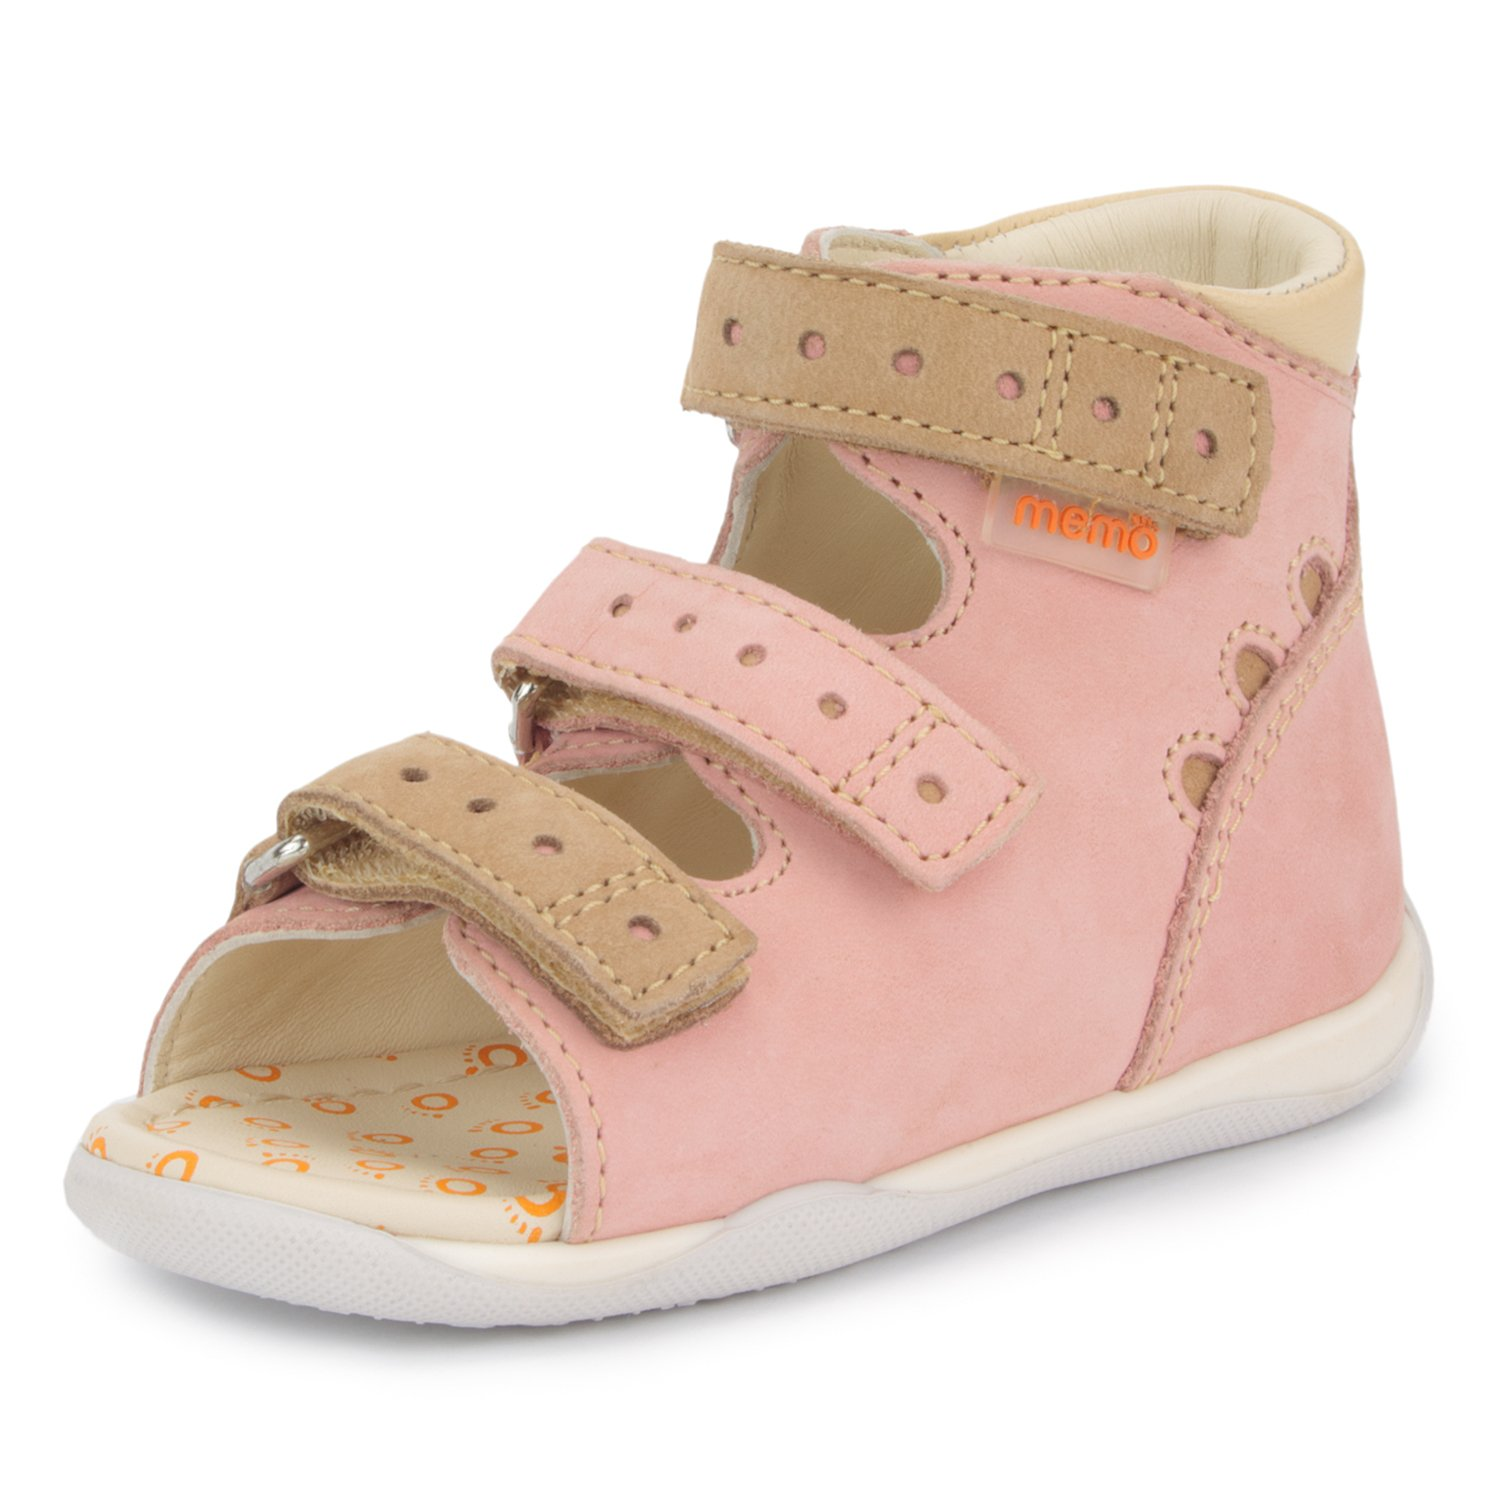 Memo Dino First Walking Orthopedic Ankle Support Natural Leather Sandal, Pink, 5 M US Toddler (20 EU) by Memo